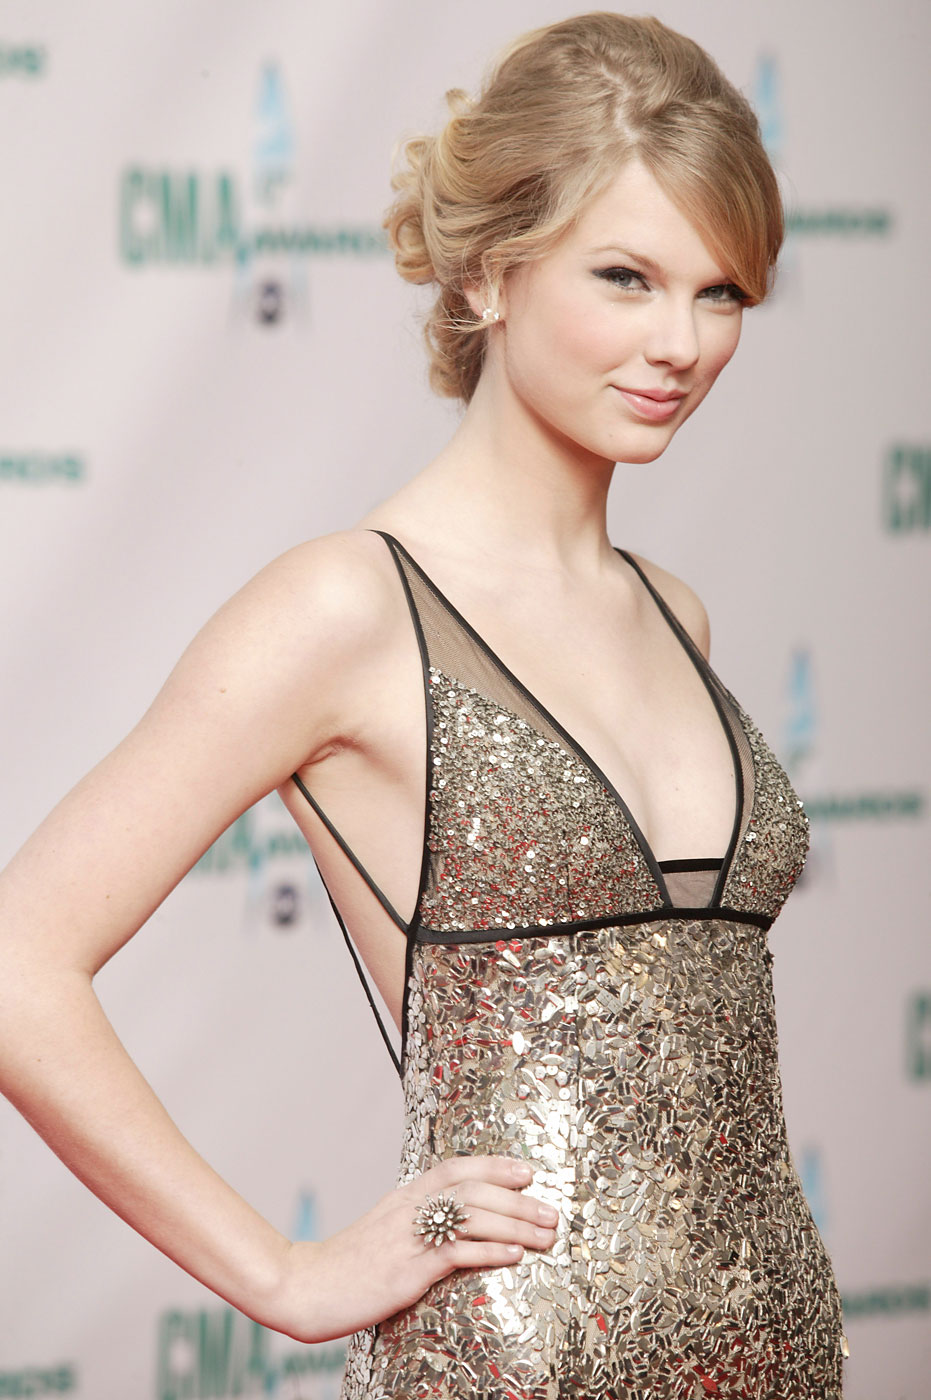 Taylor Swift attends the 42nd Annual CMA Awards at the Sommet Center in Nashville, Tennessee in 2008.